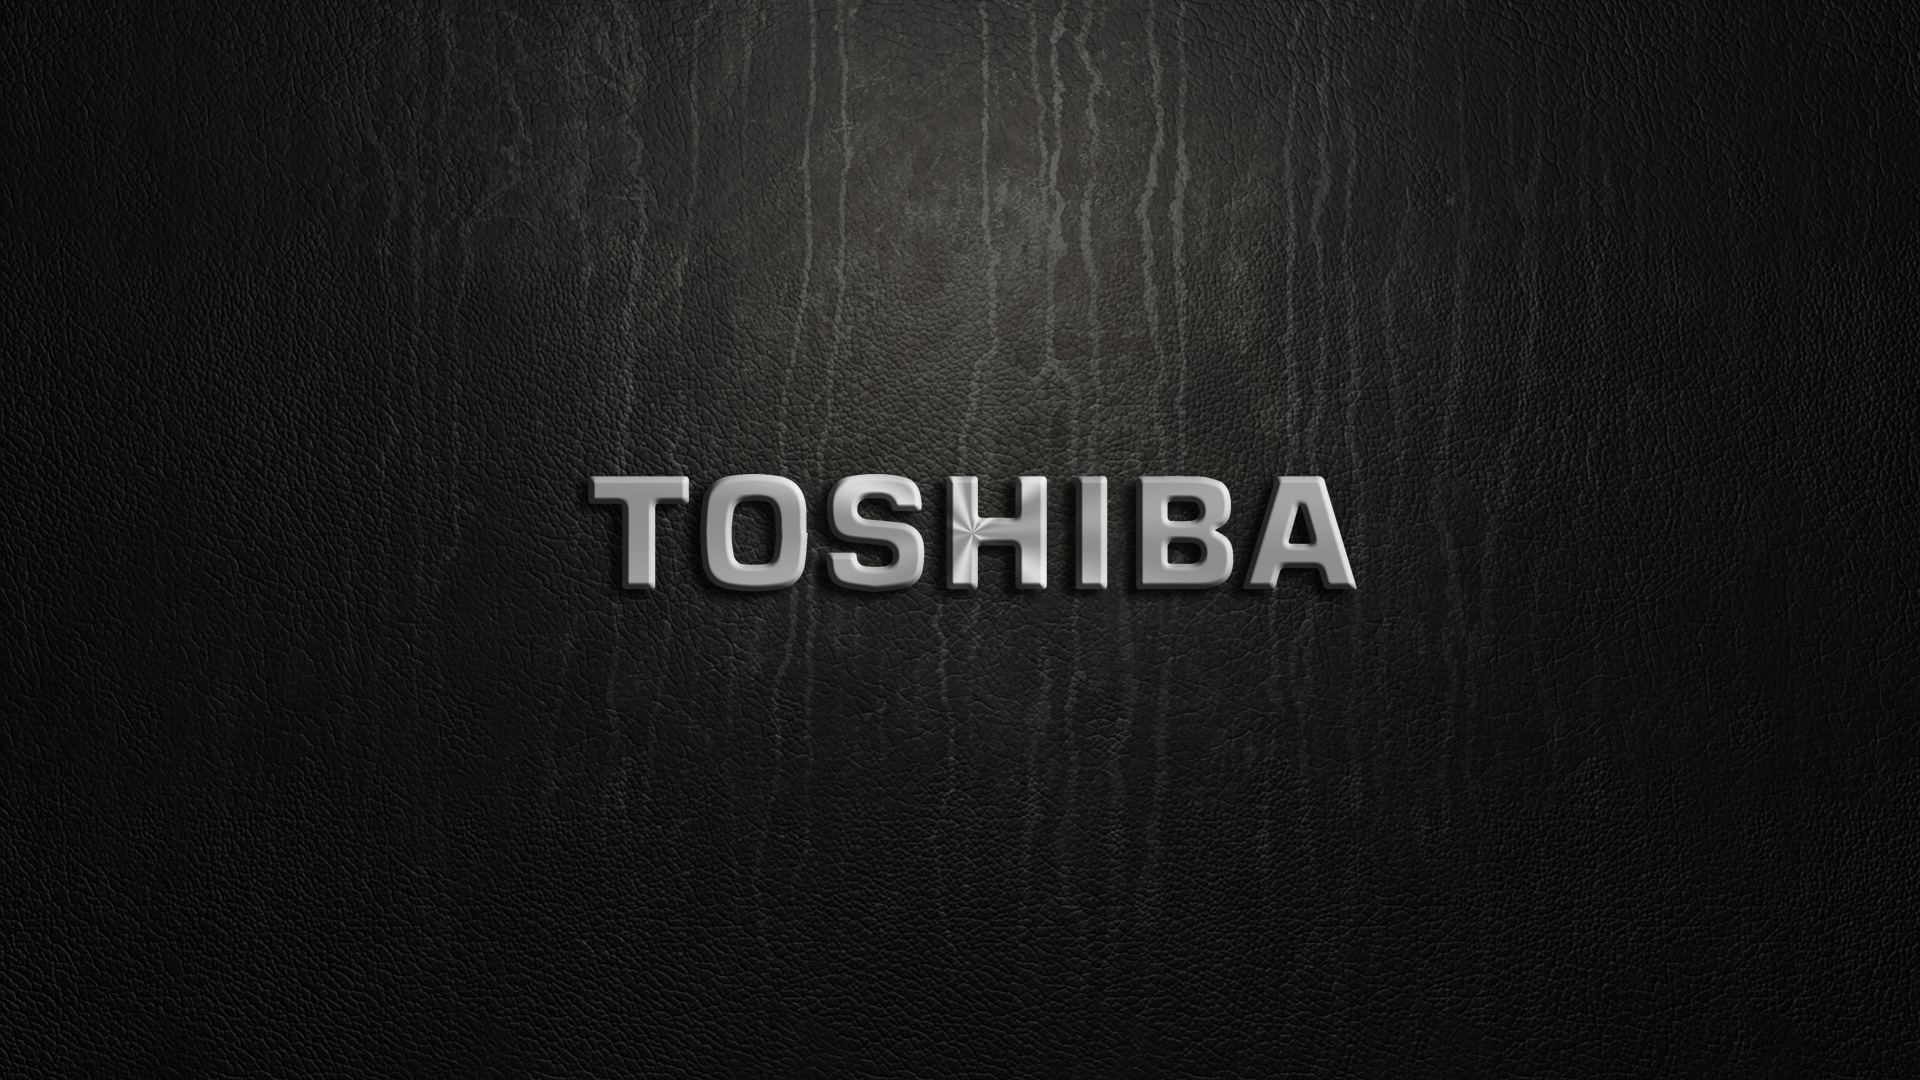 Cool Toshiba Wallpapers Top Free Cool Toshiba Backgrounds